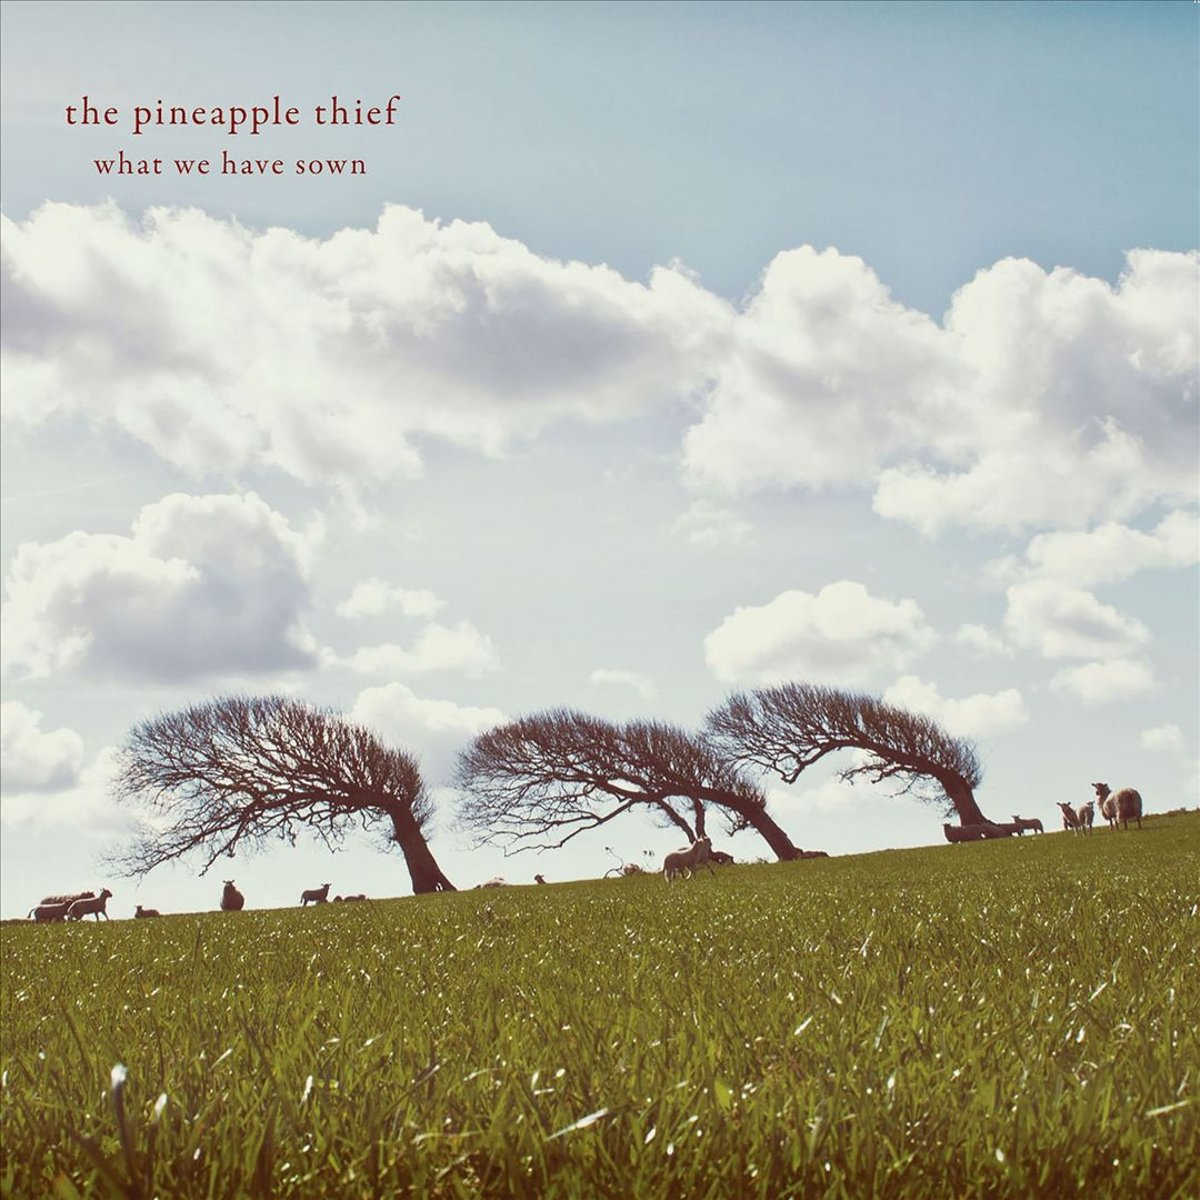 The Pineapple Thief The Pineapple Thief. What We Have Sown